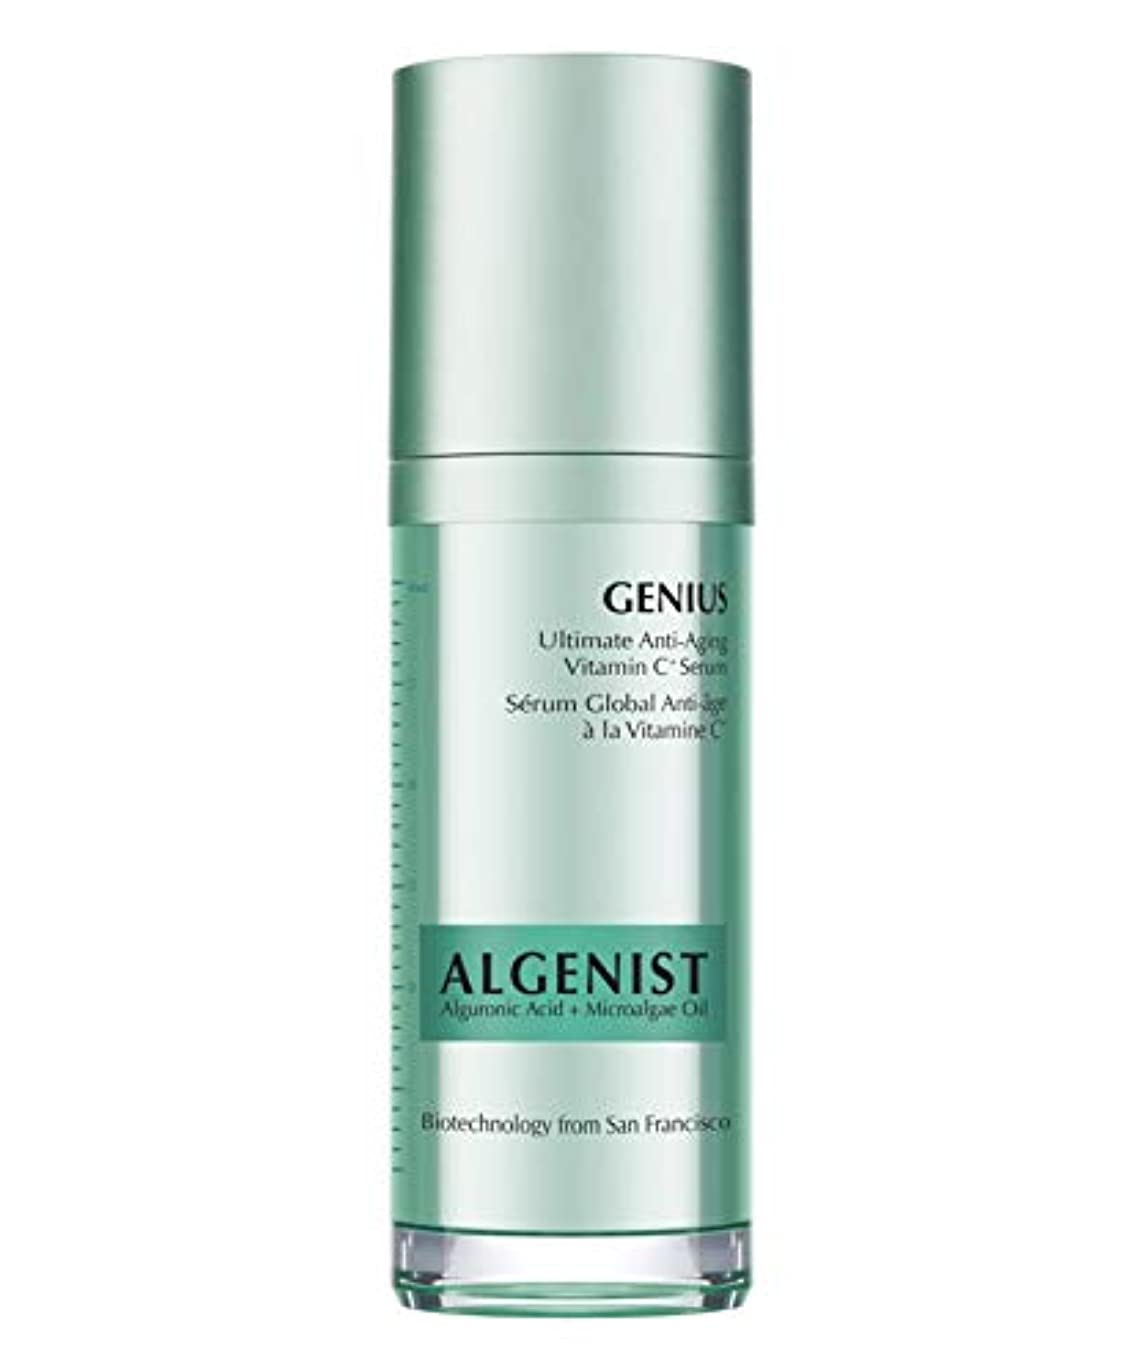 納屋キリン凝縮するAlgenist Genius Ultimate Anti-Aging Vitamin C Serum 30ml